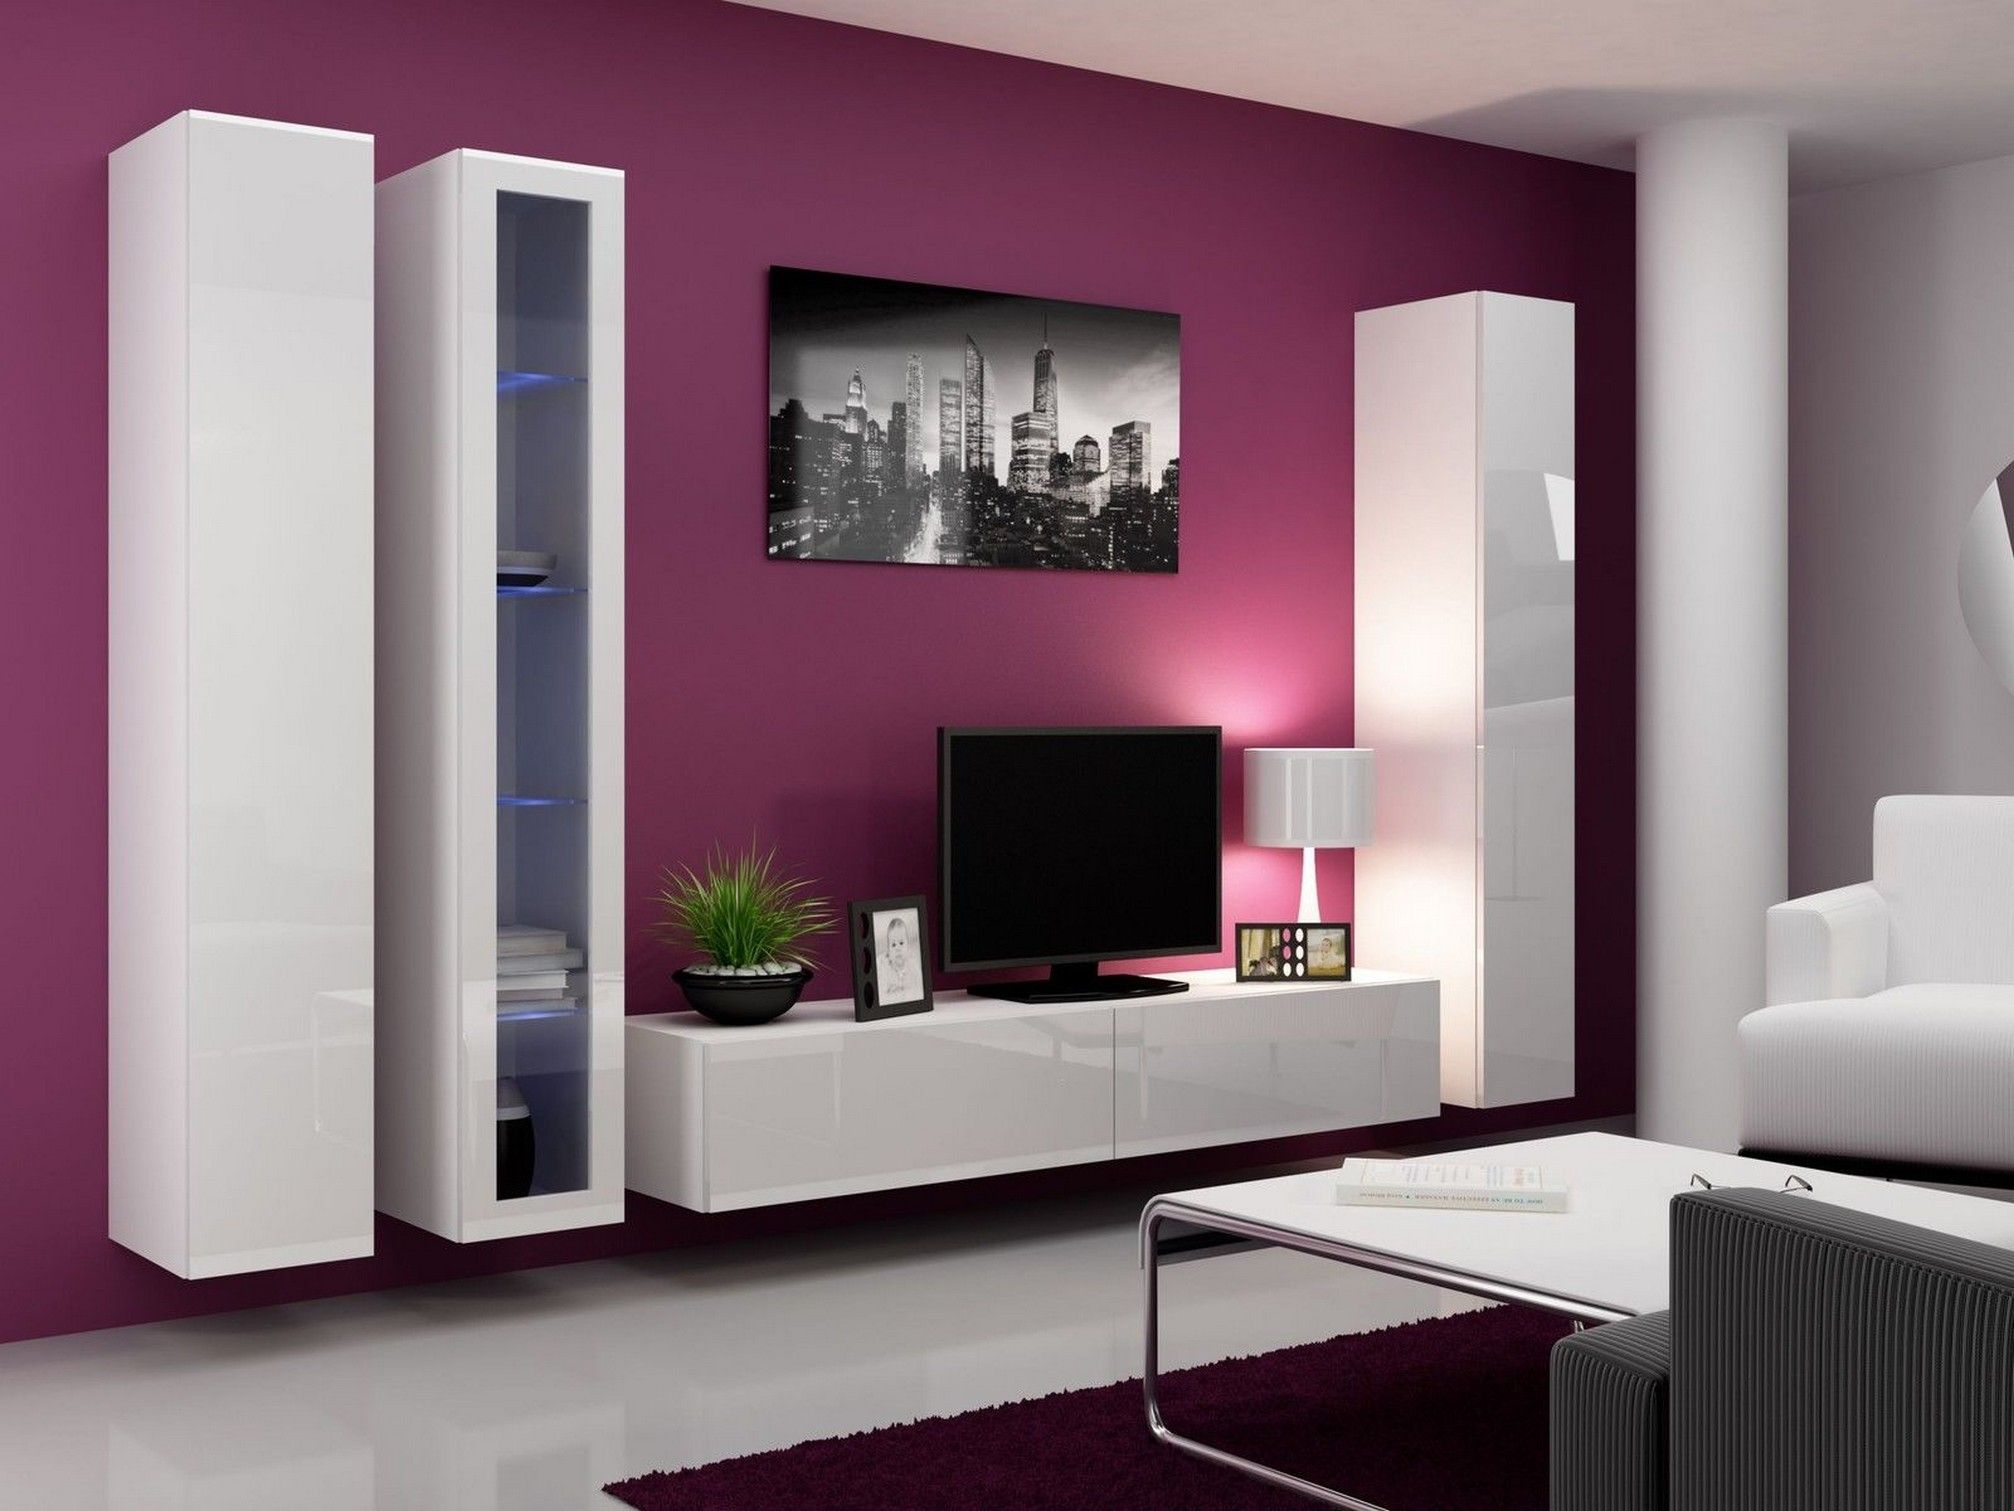 tv wall cabinets living room  wall mounted tv unit designs  - tv wall cabinets living room  wall mounted tv unit designs